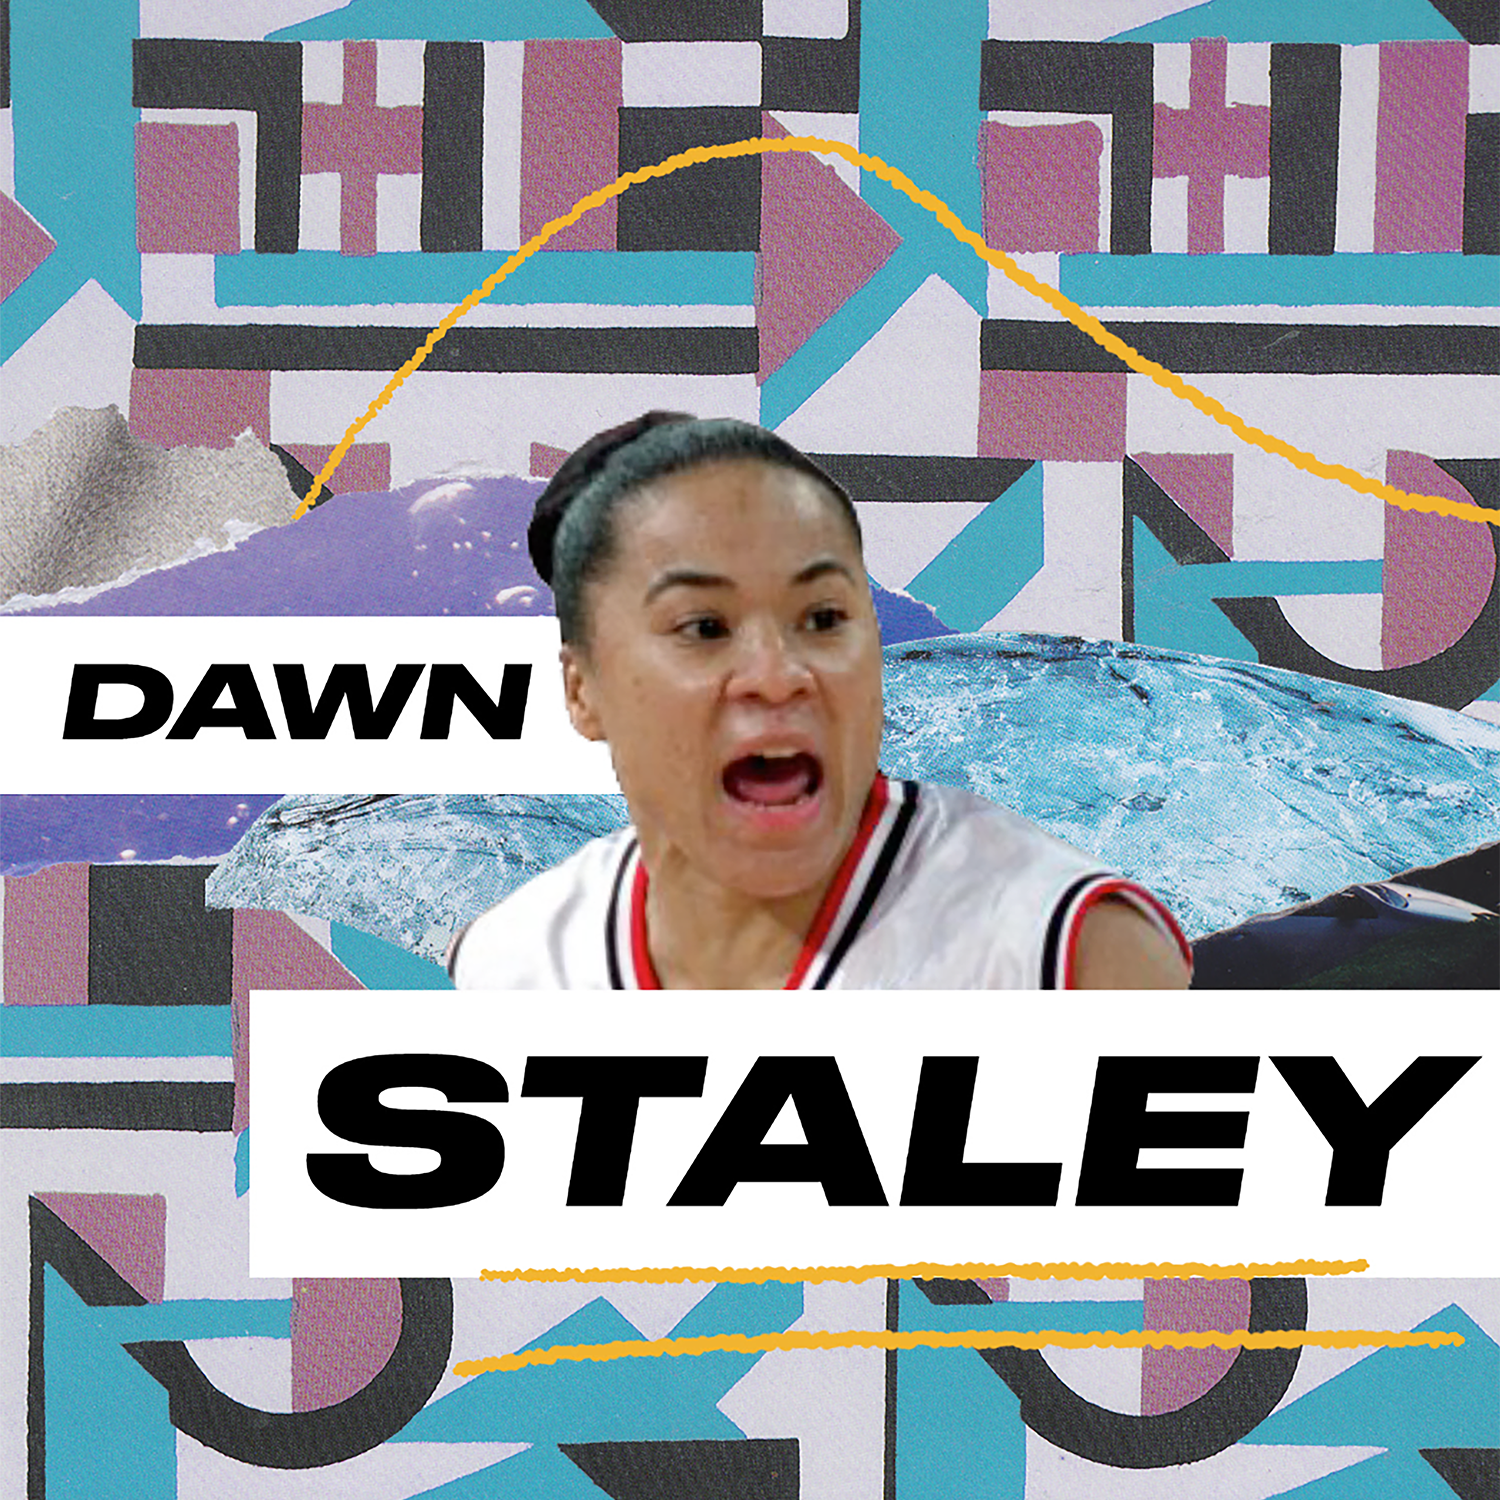 How Good was Dawn Staley?